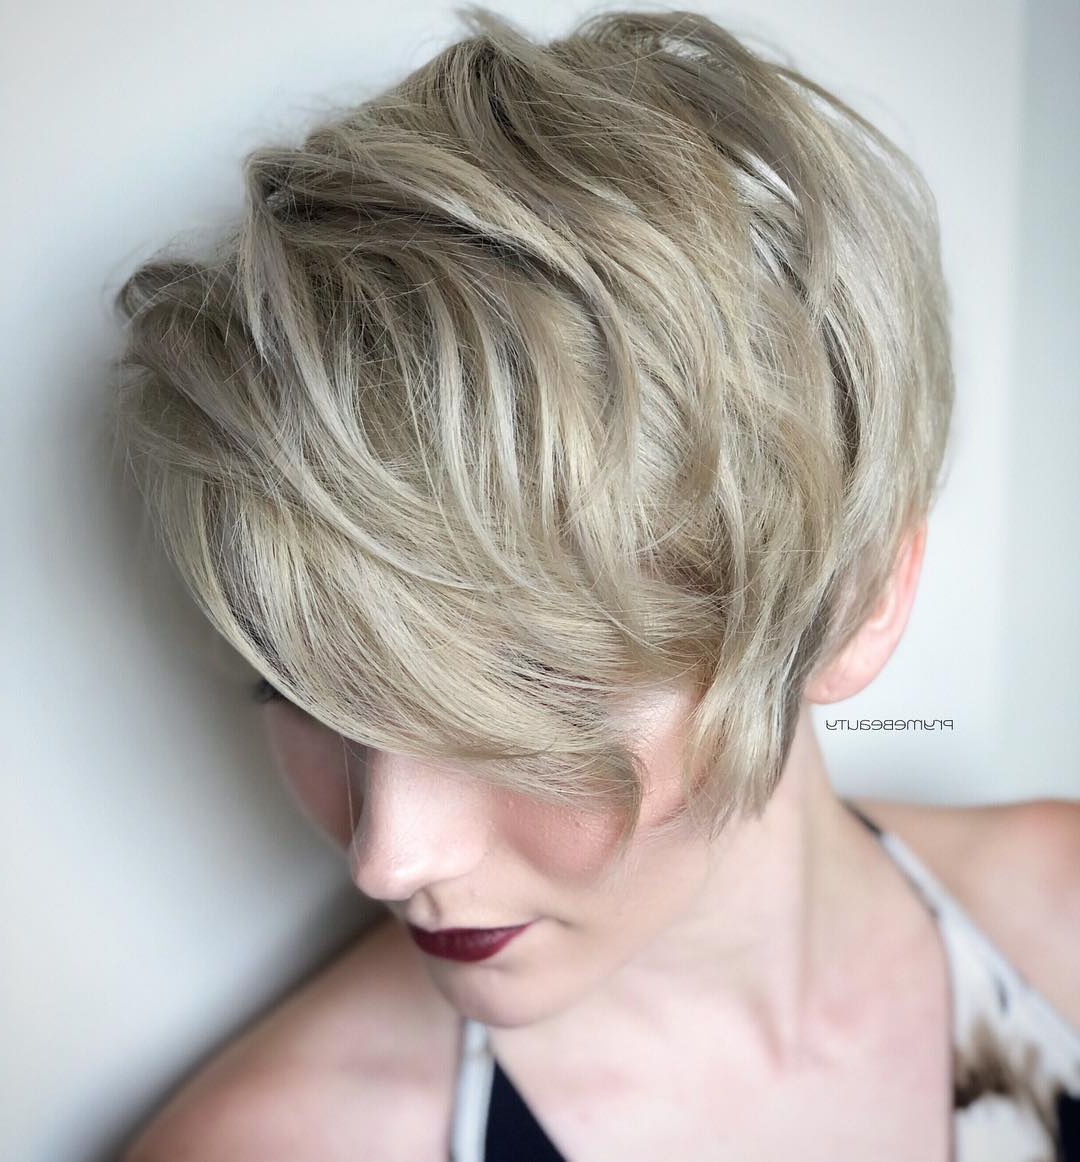 Top 10 Trendy, Low Maintenance Short Layered Hairstyles For 2018  2019 With No Maintenance Short Haircuts (View 6 of 25)